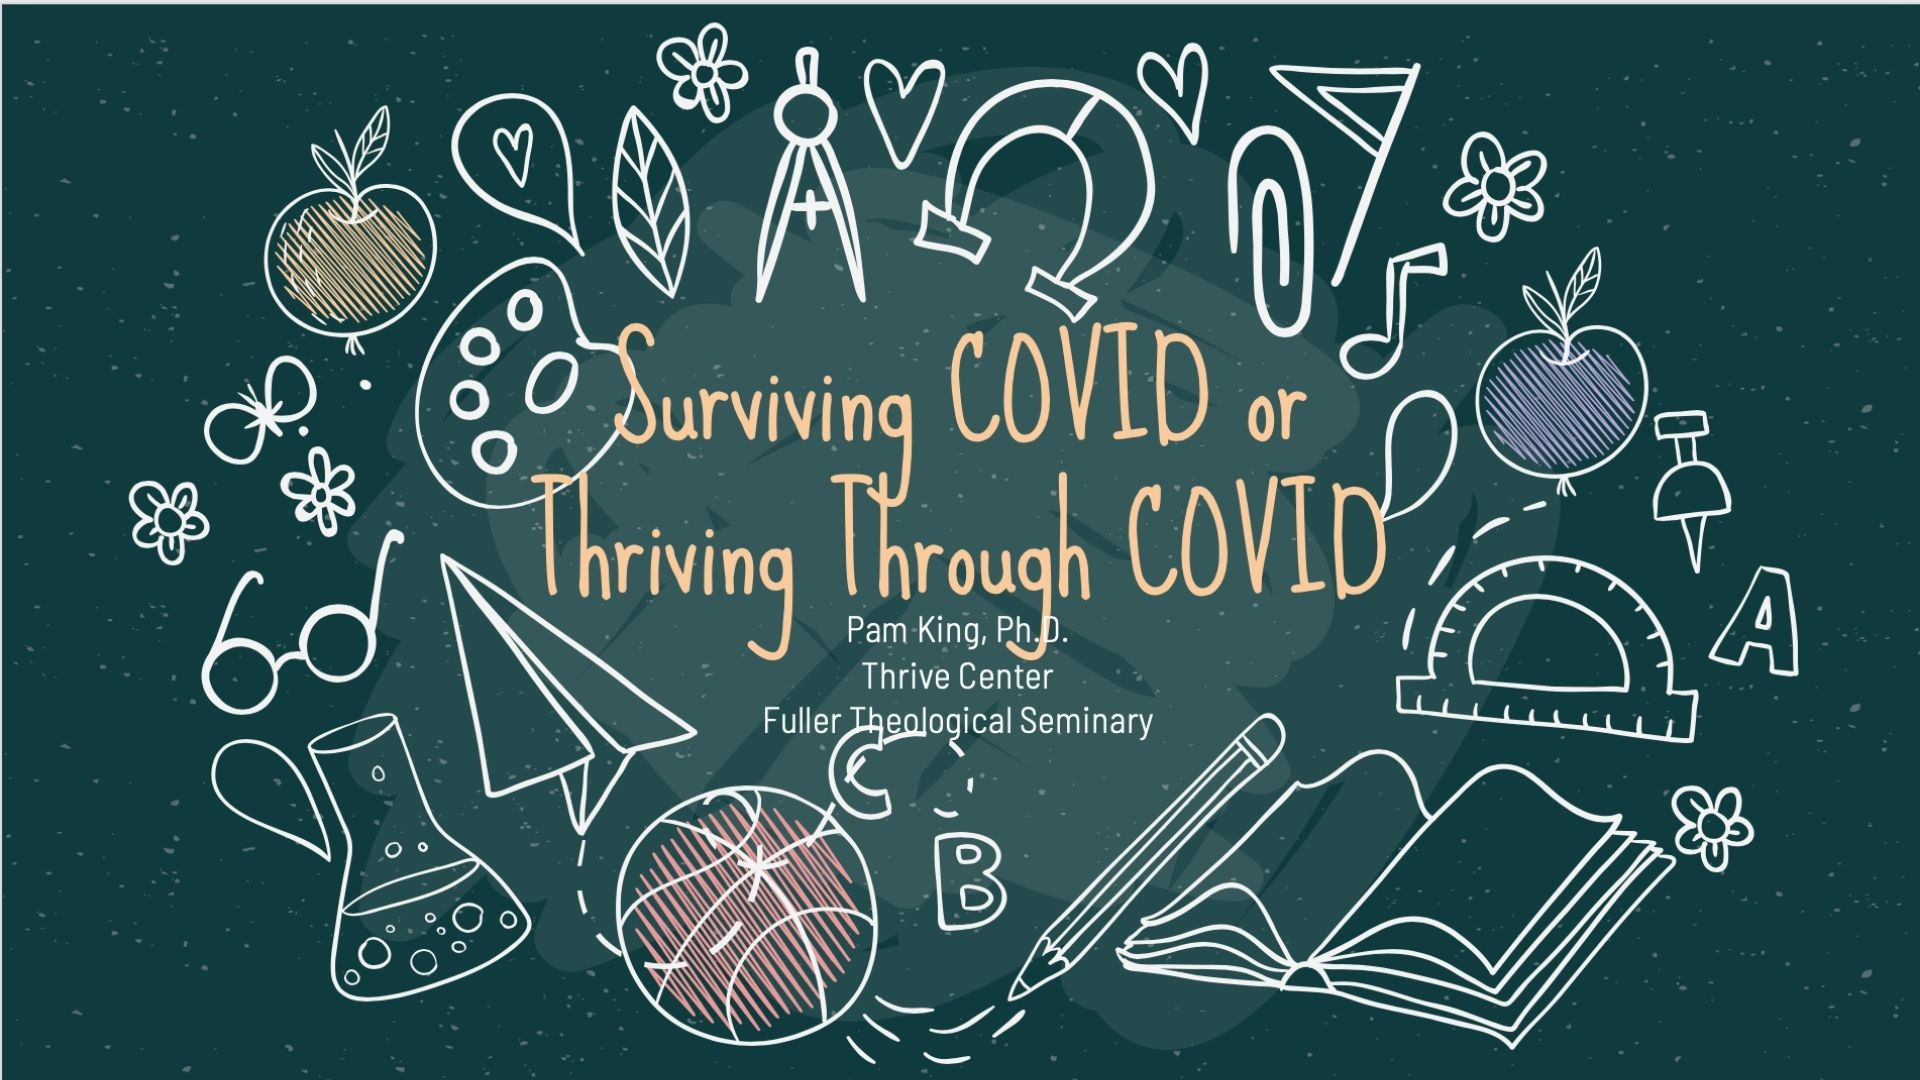 Surviving or Thriving through COVID-19